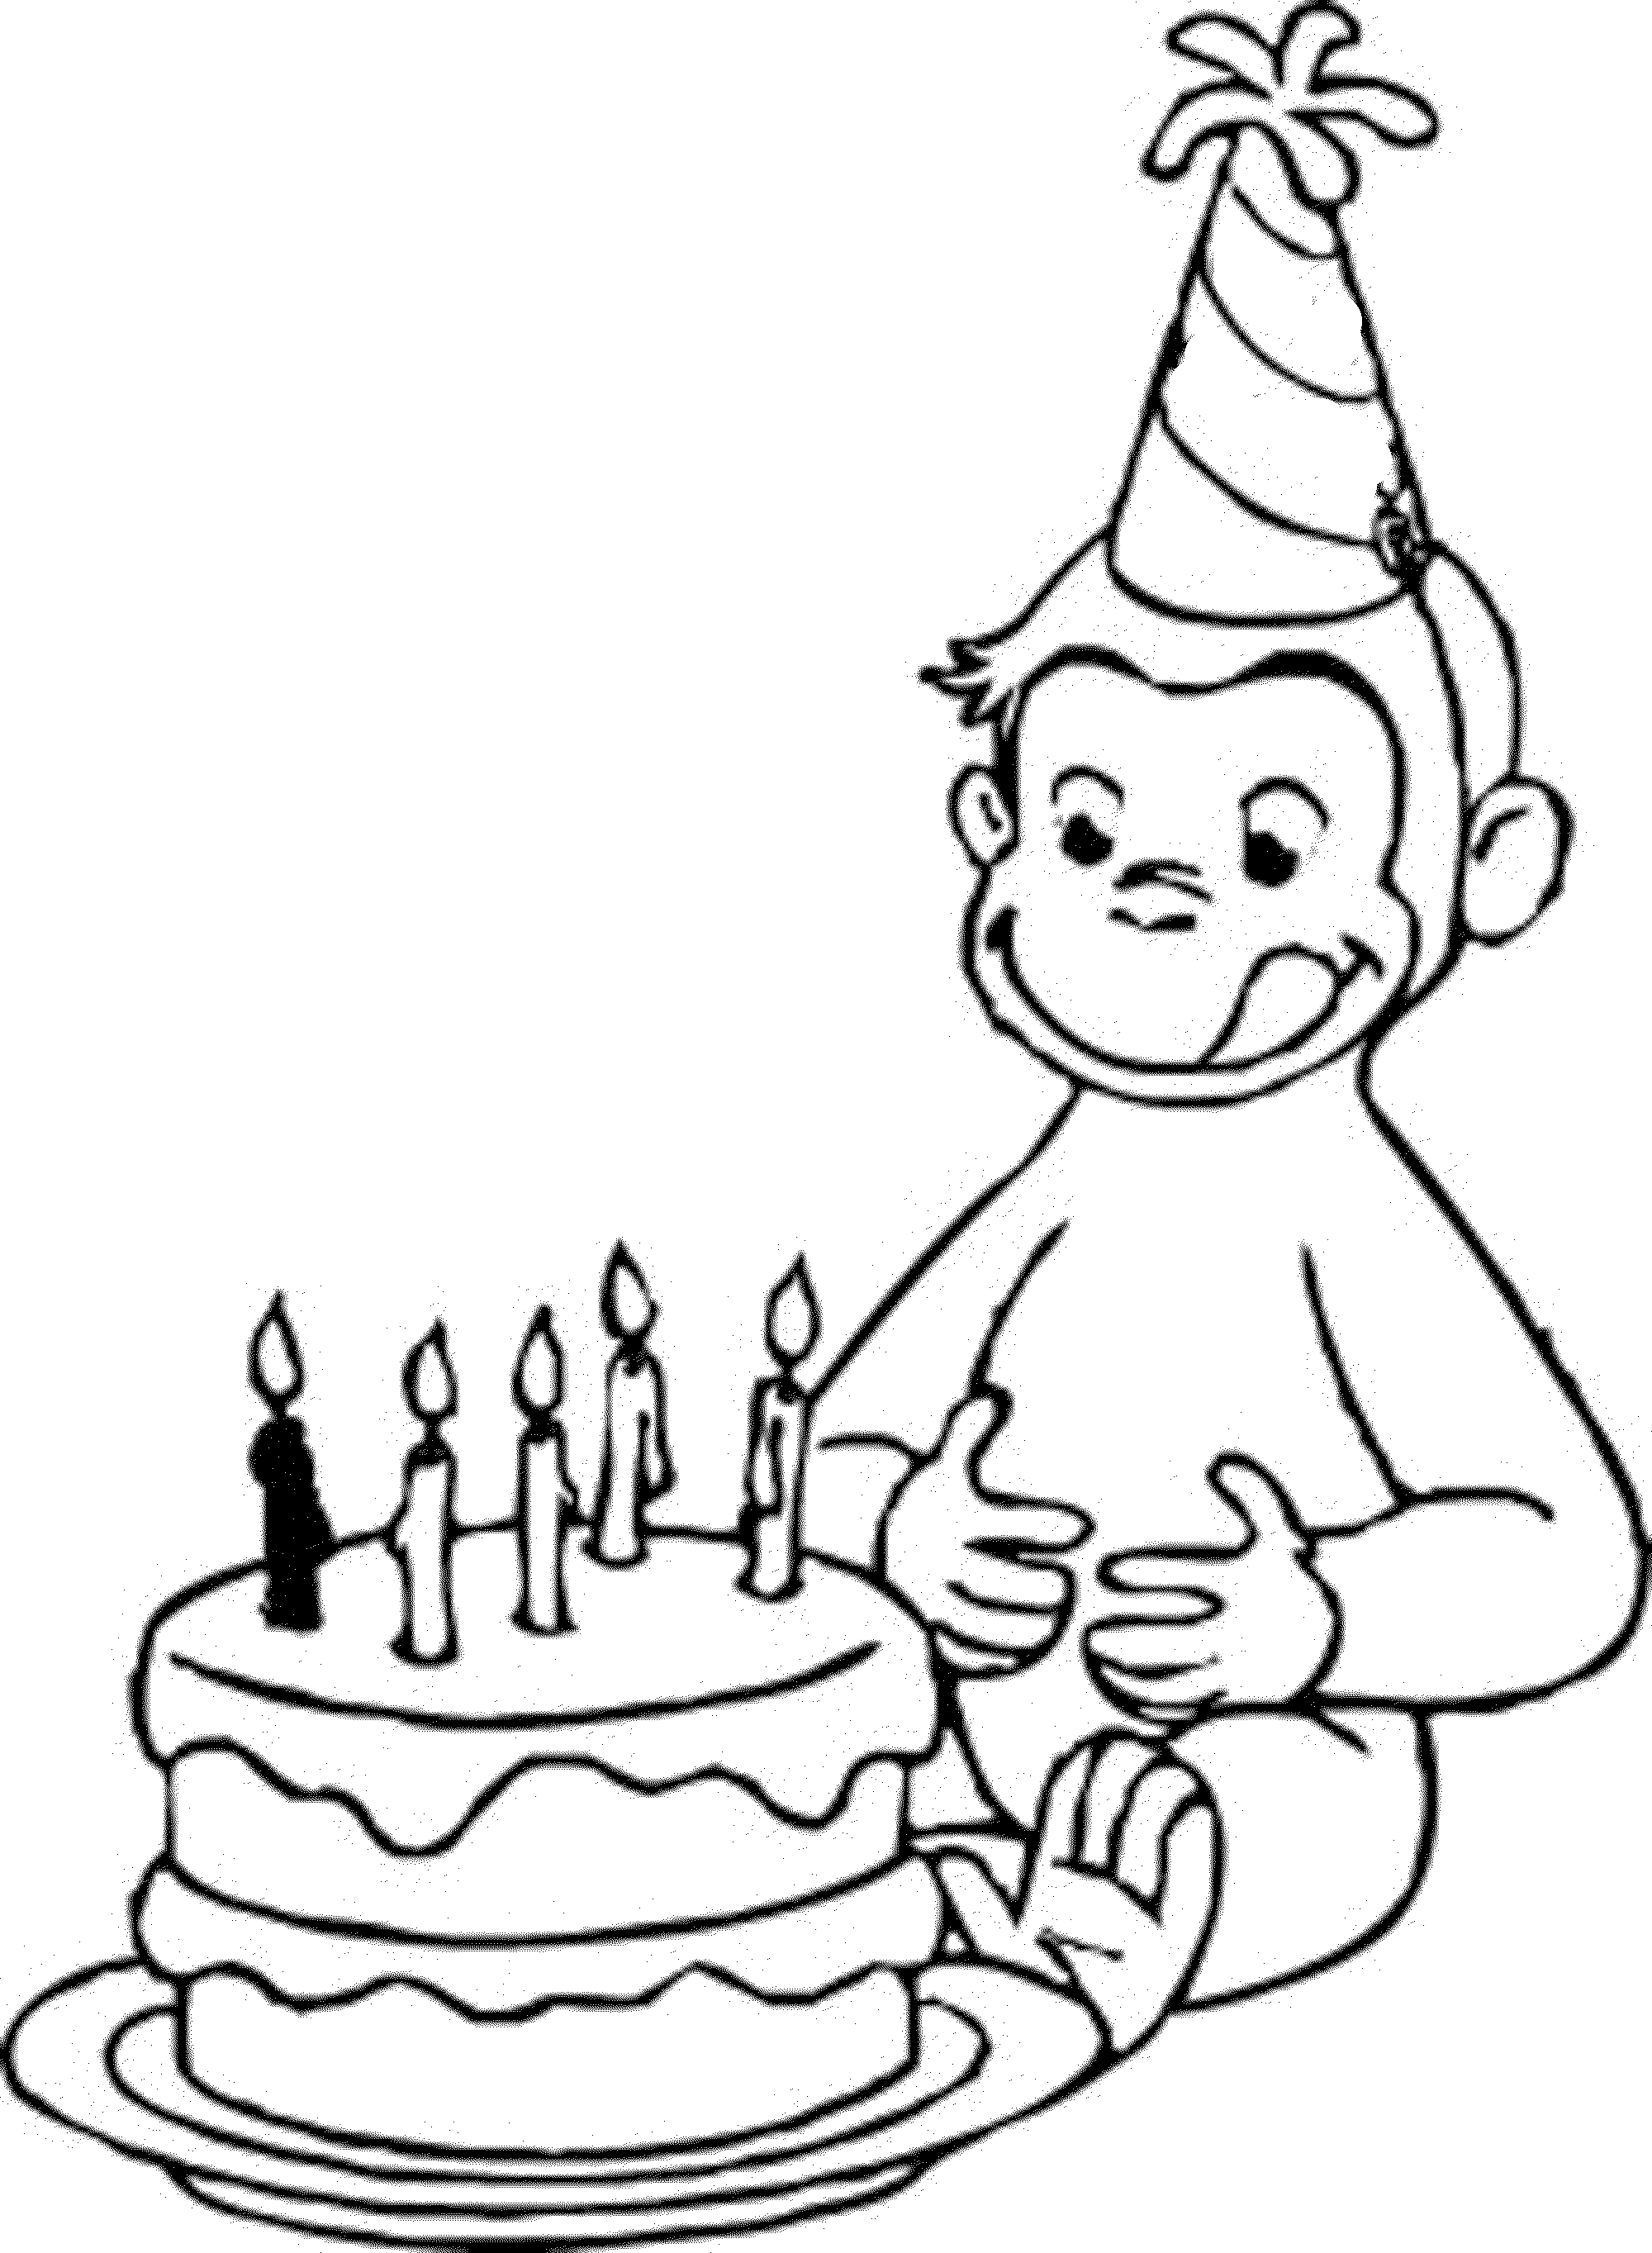 shop related products - Coloring Pages For Happy Birthday